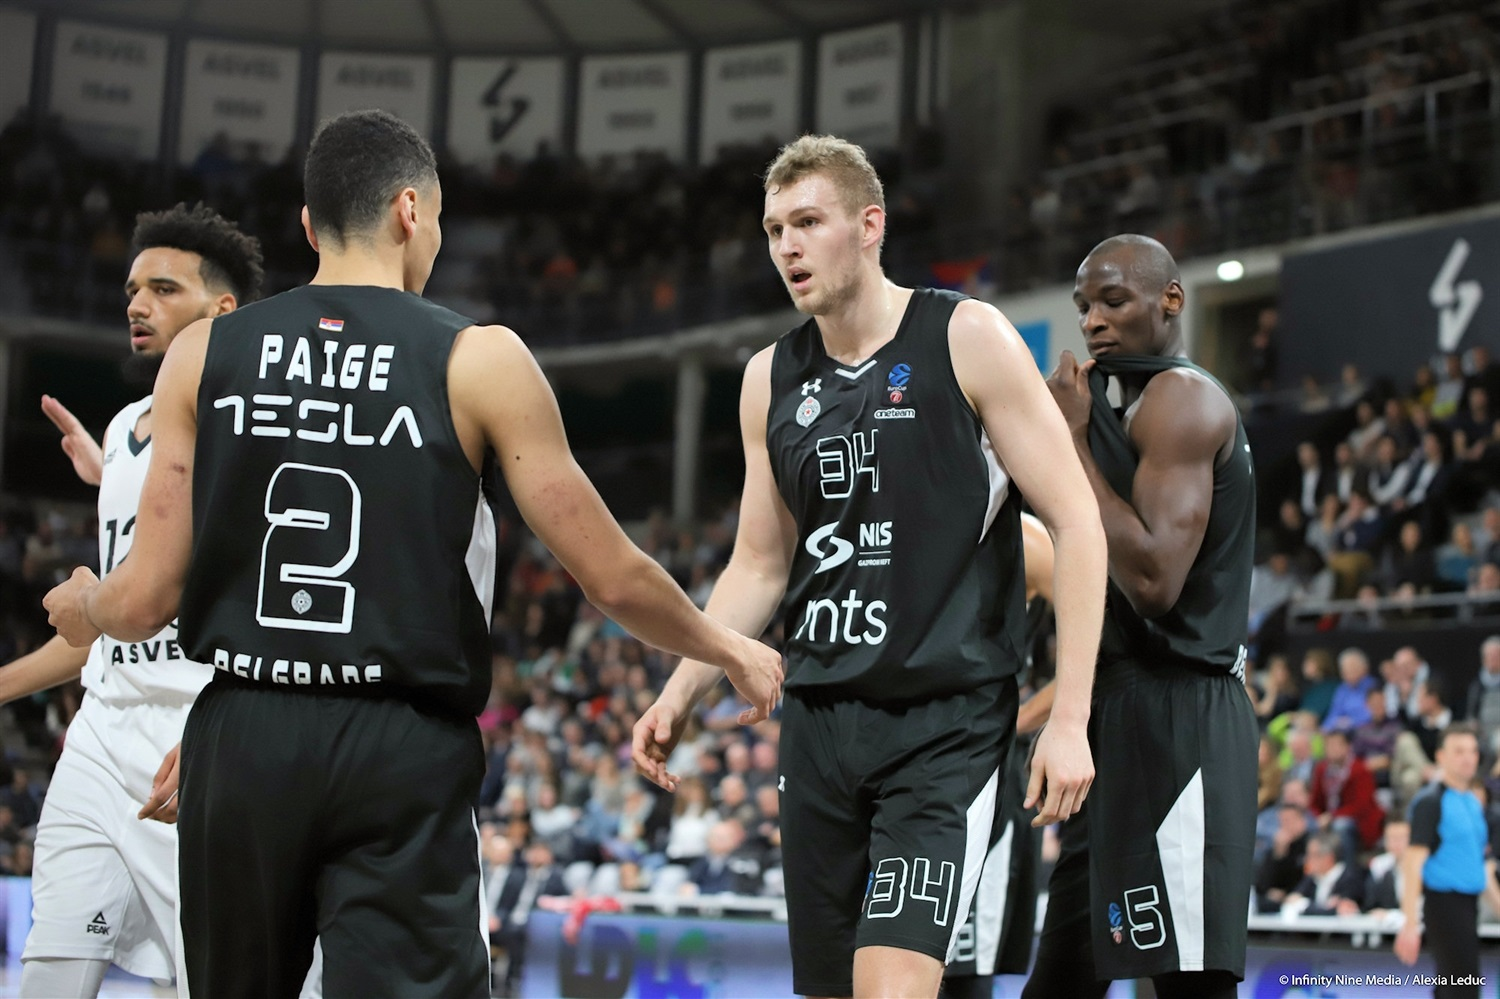 Jock Landale - Partizan NIS Belgrade (photo Infinity Nine Media - Alexia Leduc) - EC18